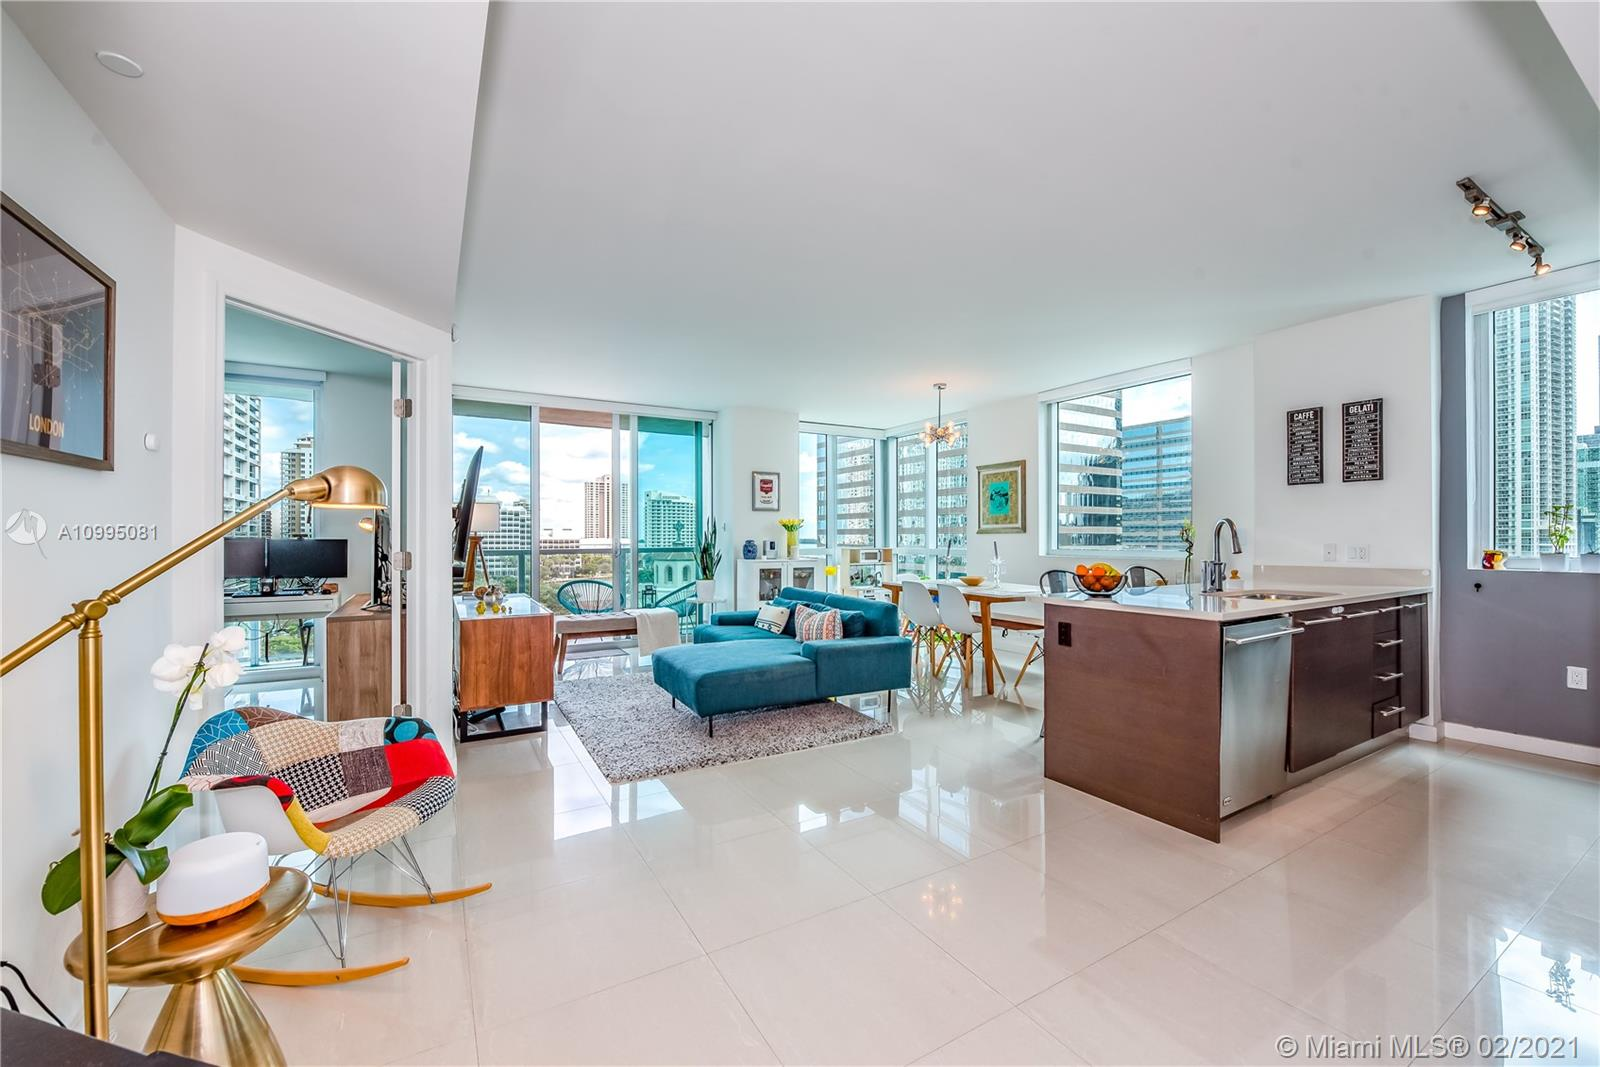 GREAT LOCATION !!!!! GORGEOUS 2/2 UPDATED WITH MARBLE FLOORS ALL THROUGH-OUT.  EUROPEAN KITCHEN WITH STAINLESS STEEL APPLIANCES AND QUARZ COUNTERTOP.AMAZING AMENITIES INCLUDING SPA, 3 POOLS, ROOF TOP KITCHEN AND CLUB ROOM. LOCATED IN THE HEART OF BRICKELL AND NEXT TO BRICKELL CITY CENTER MALL. THIS ONE WON'T LAST!!!!!!!